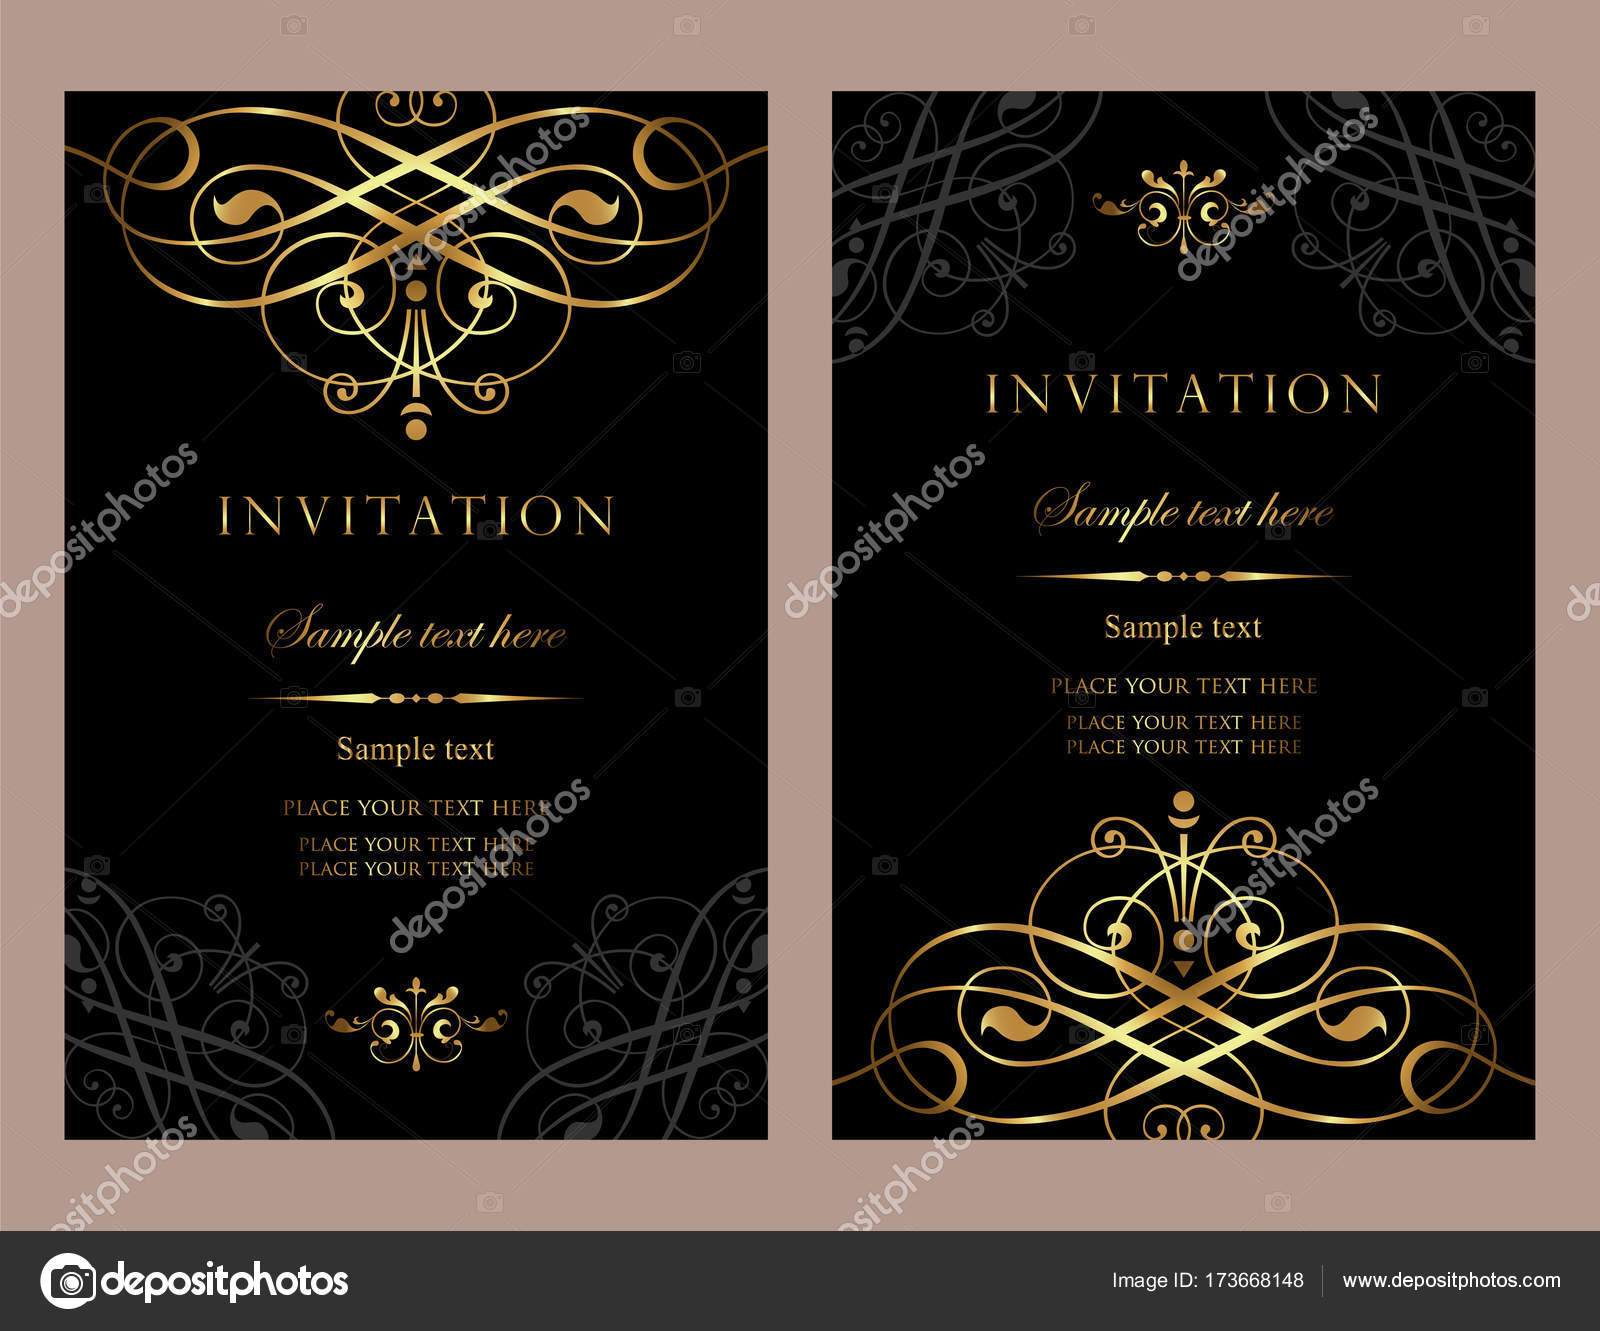 Invitation card design - luxury black and gold vintage style — Stock Vector  © bluepencil #173668148